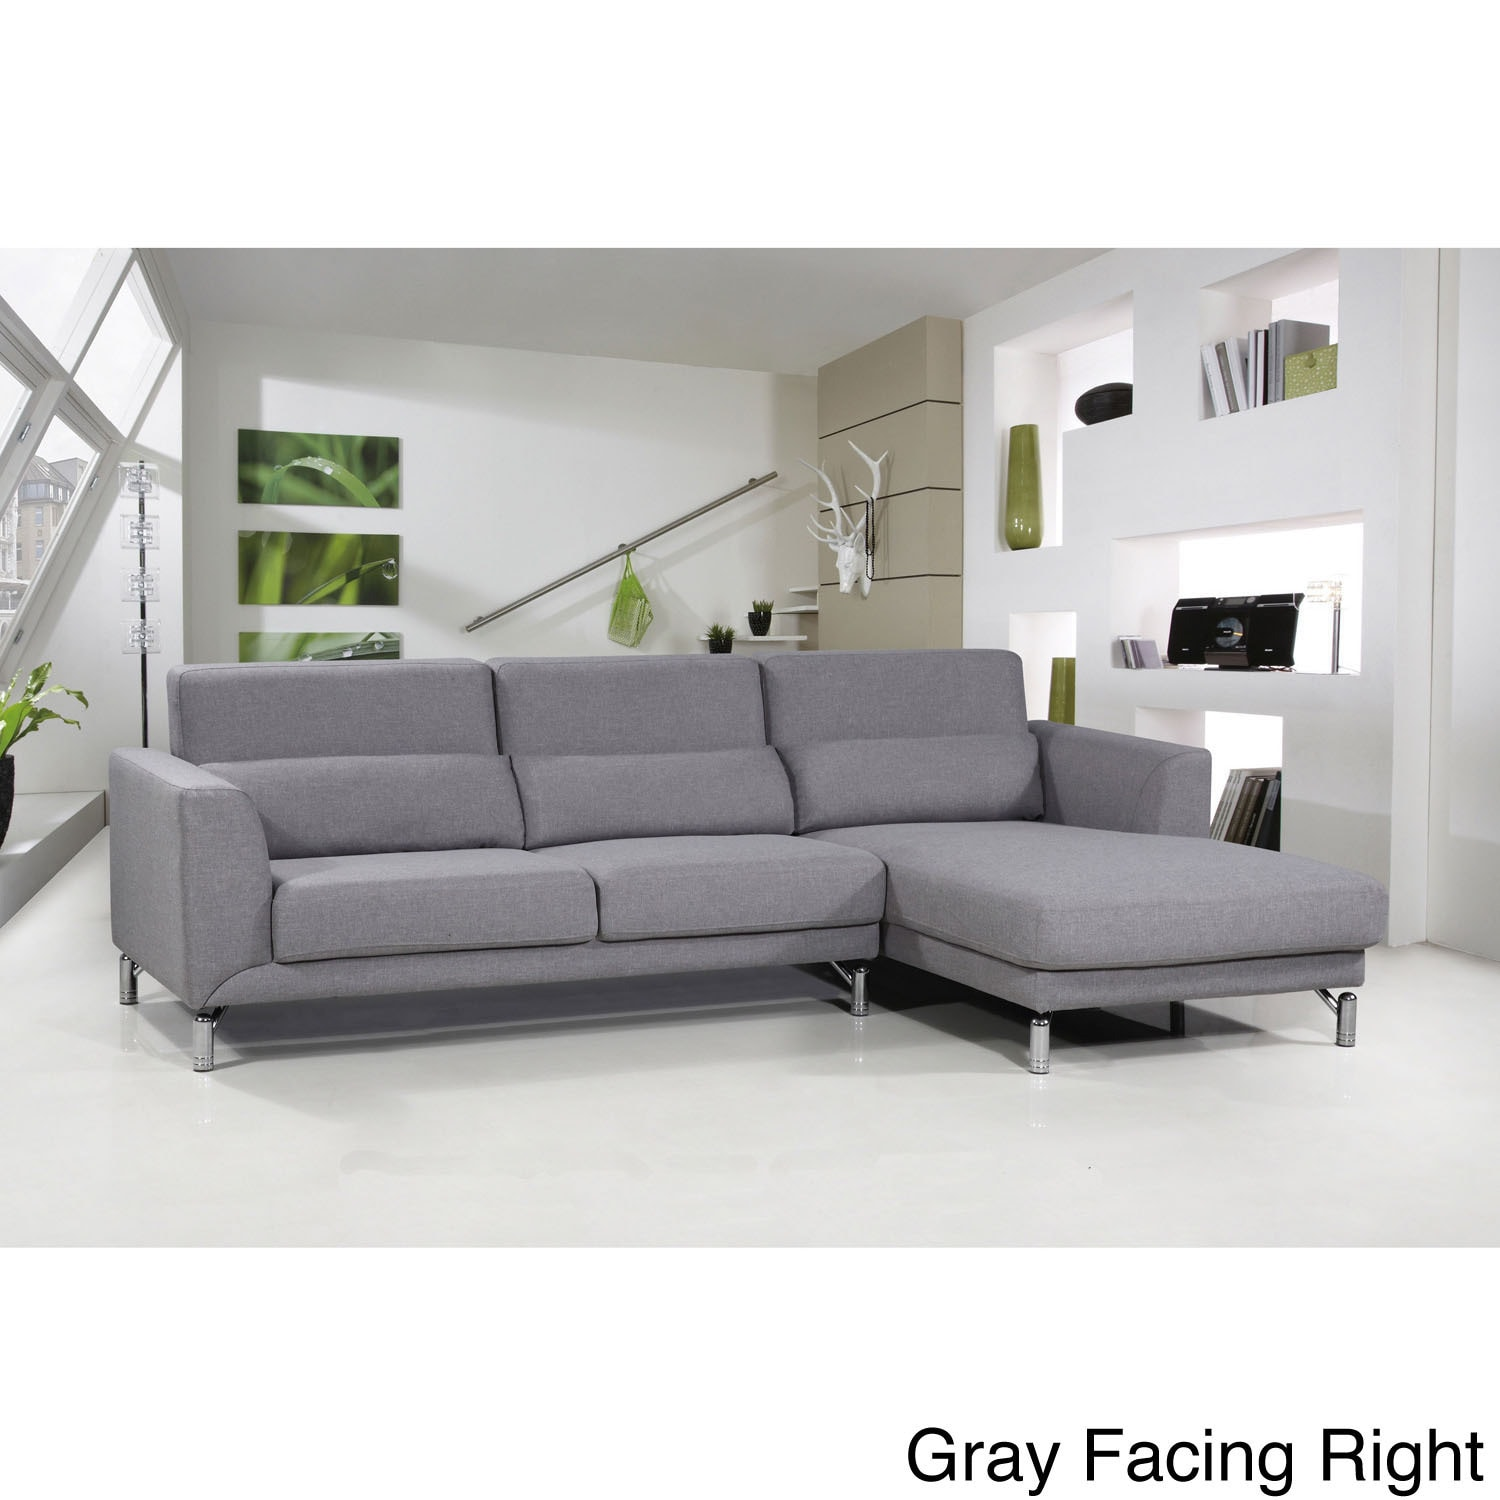 Shop aria fabric modern sectional sofa set free shipping today overstock com 9629481